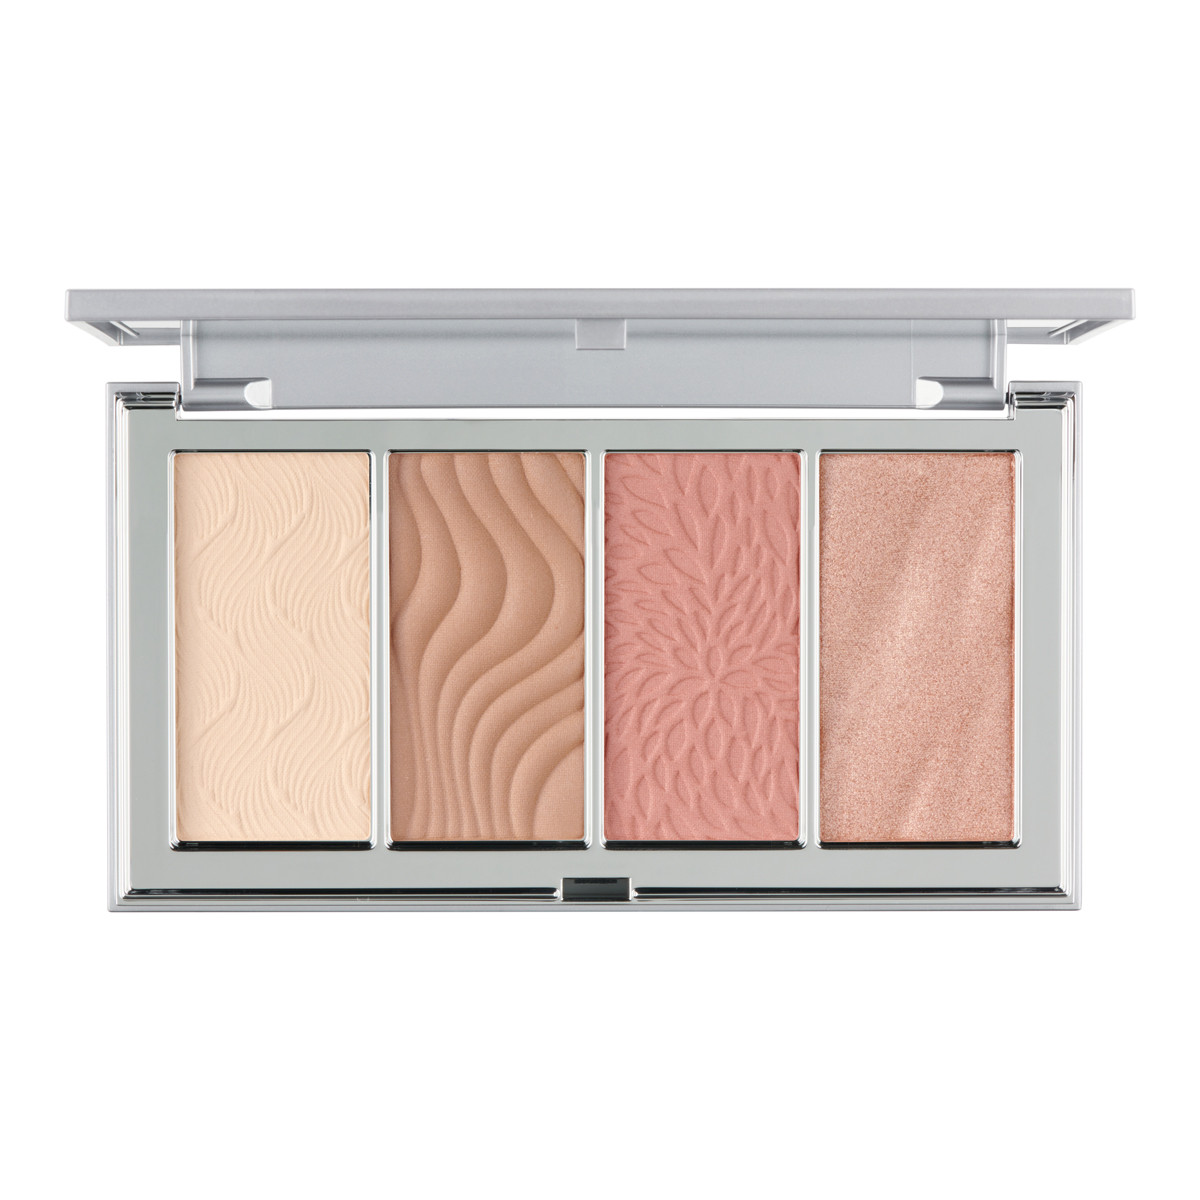 purcosmetics - 4-in-1 Skin-Perfecting Powders Face Palette